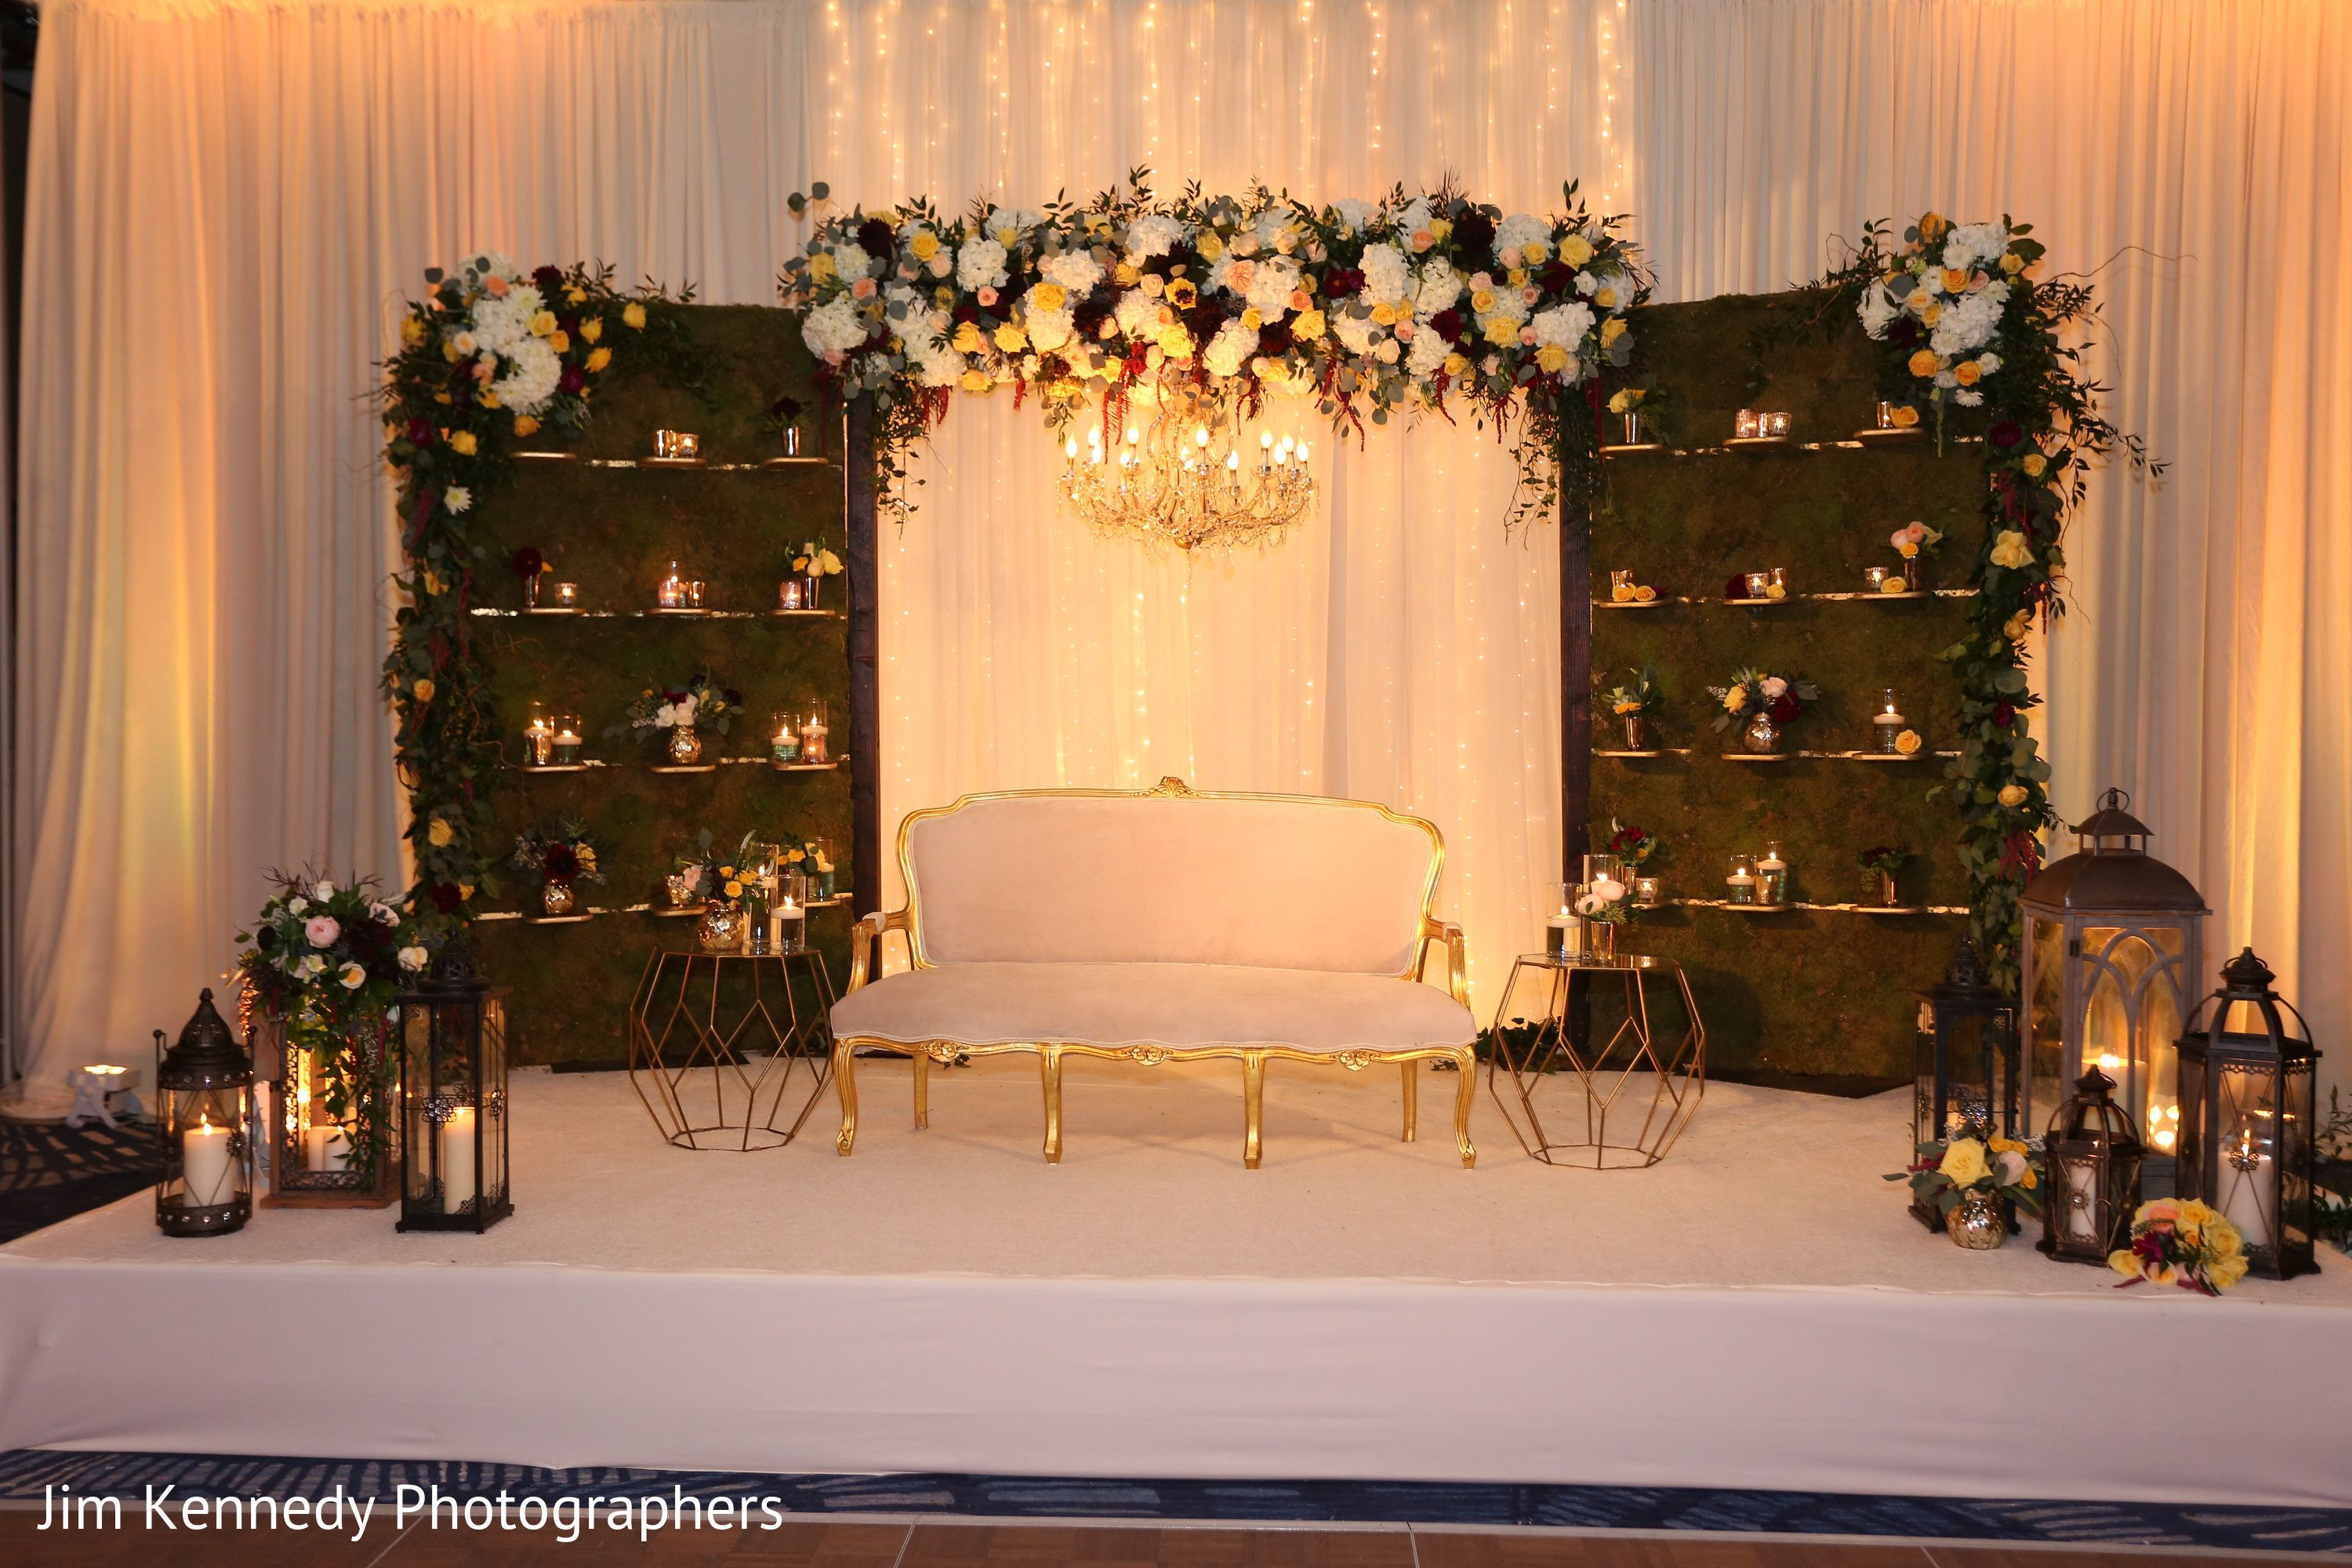 Wedding decoration stage backdrop  Pin by jc singer on wedding  Pinterest  Stage Wedding and Weddings